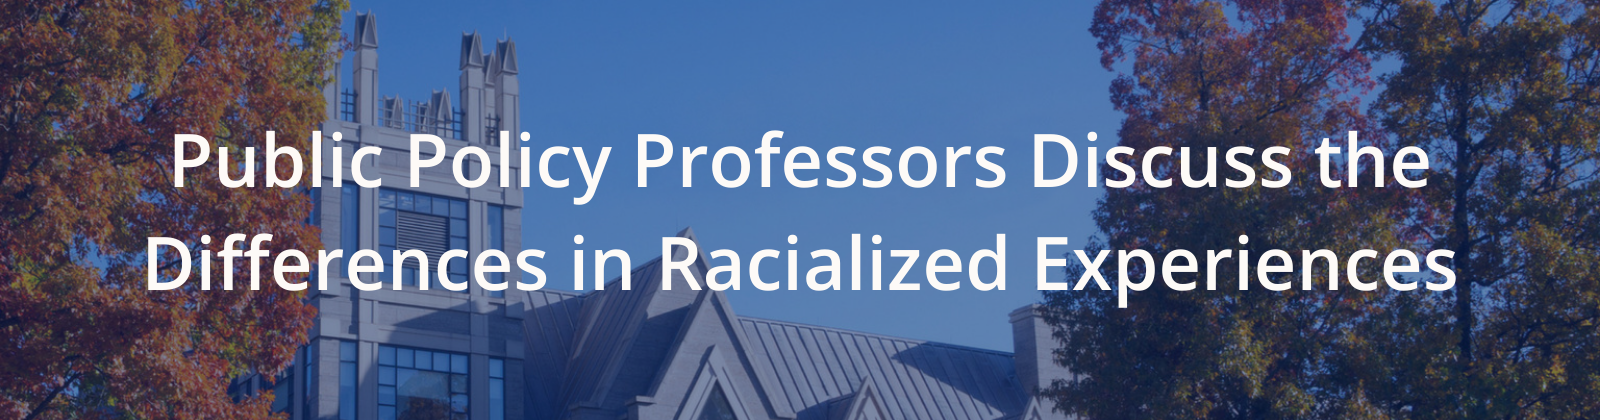 Public Policy Professors Discuss the Differences in Racialized Experiences